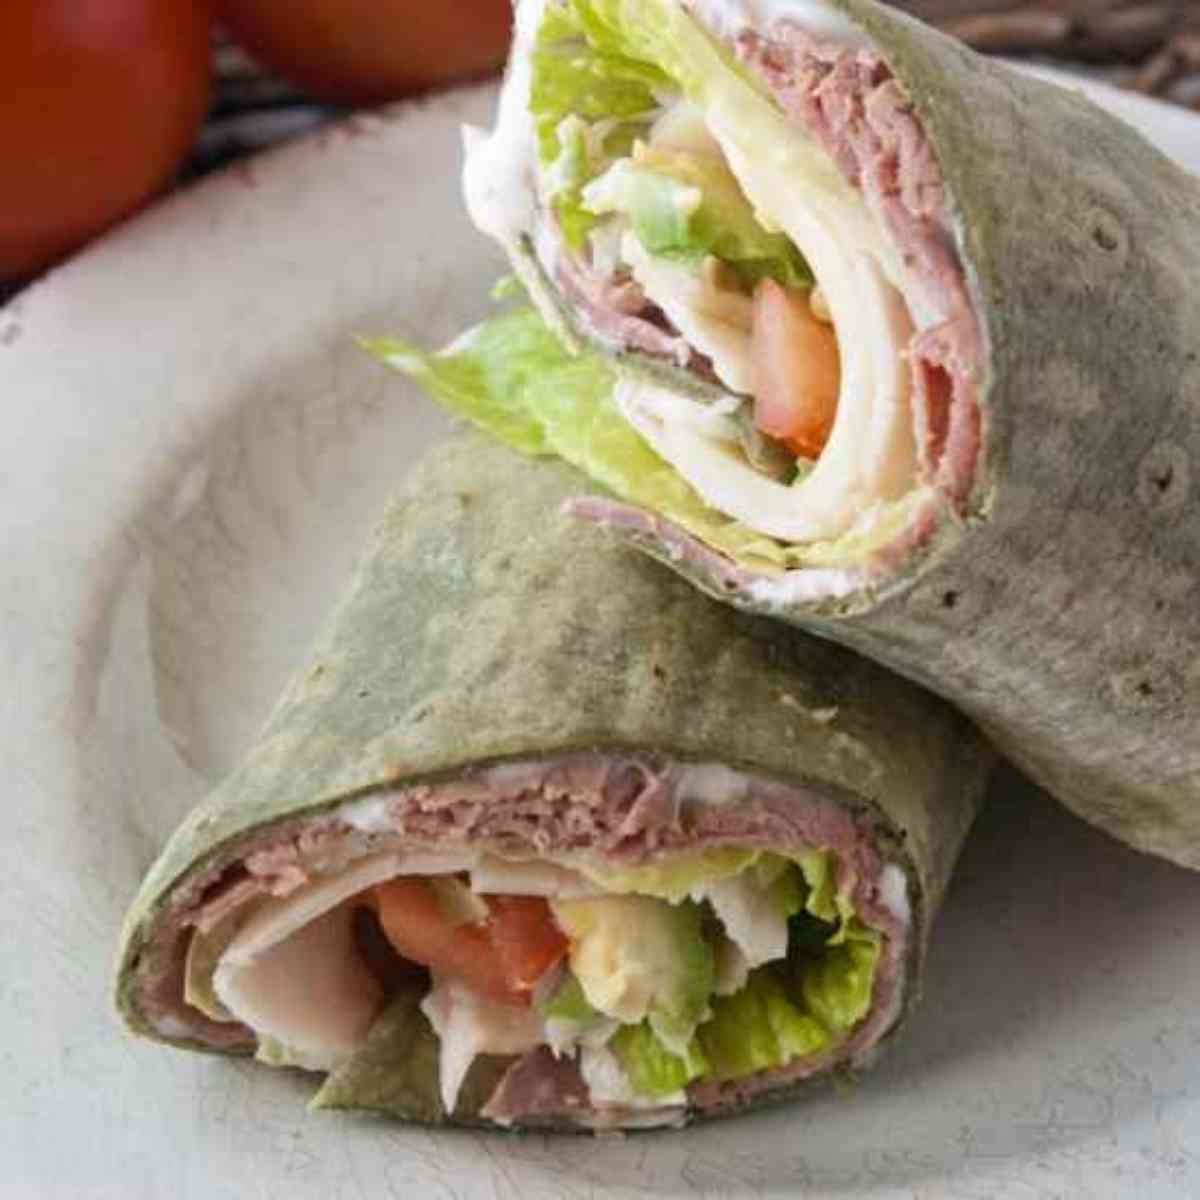 Roast beef turkey wrap cut in half and put on a plate.